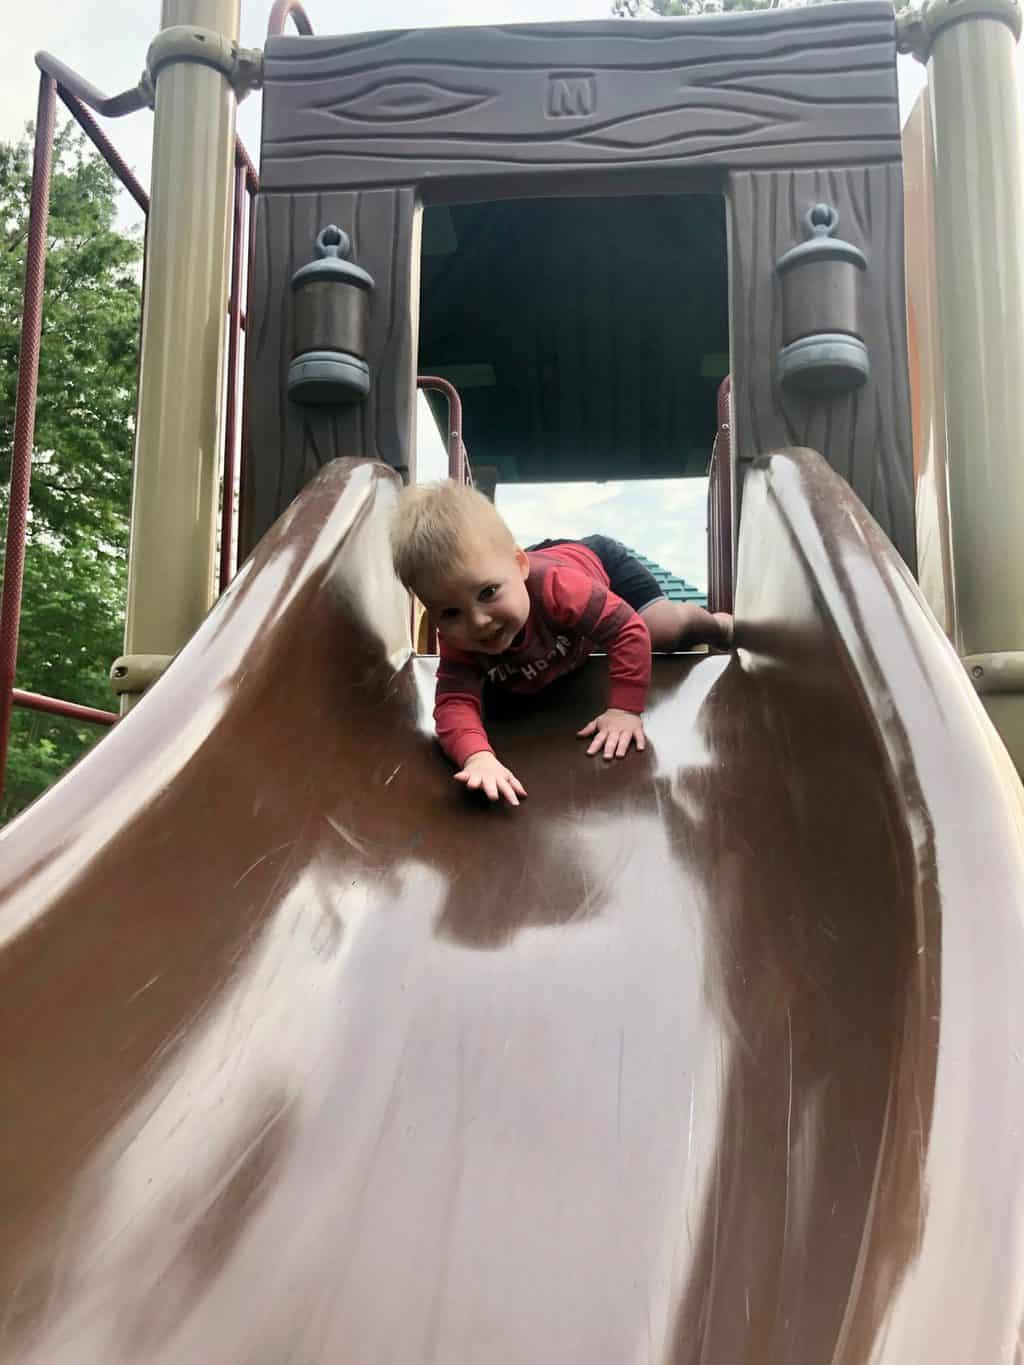 sspear playing on playground